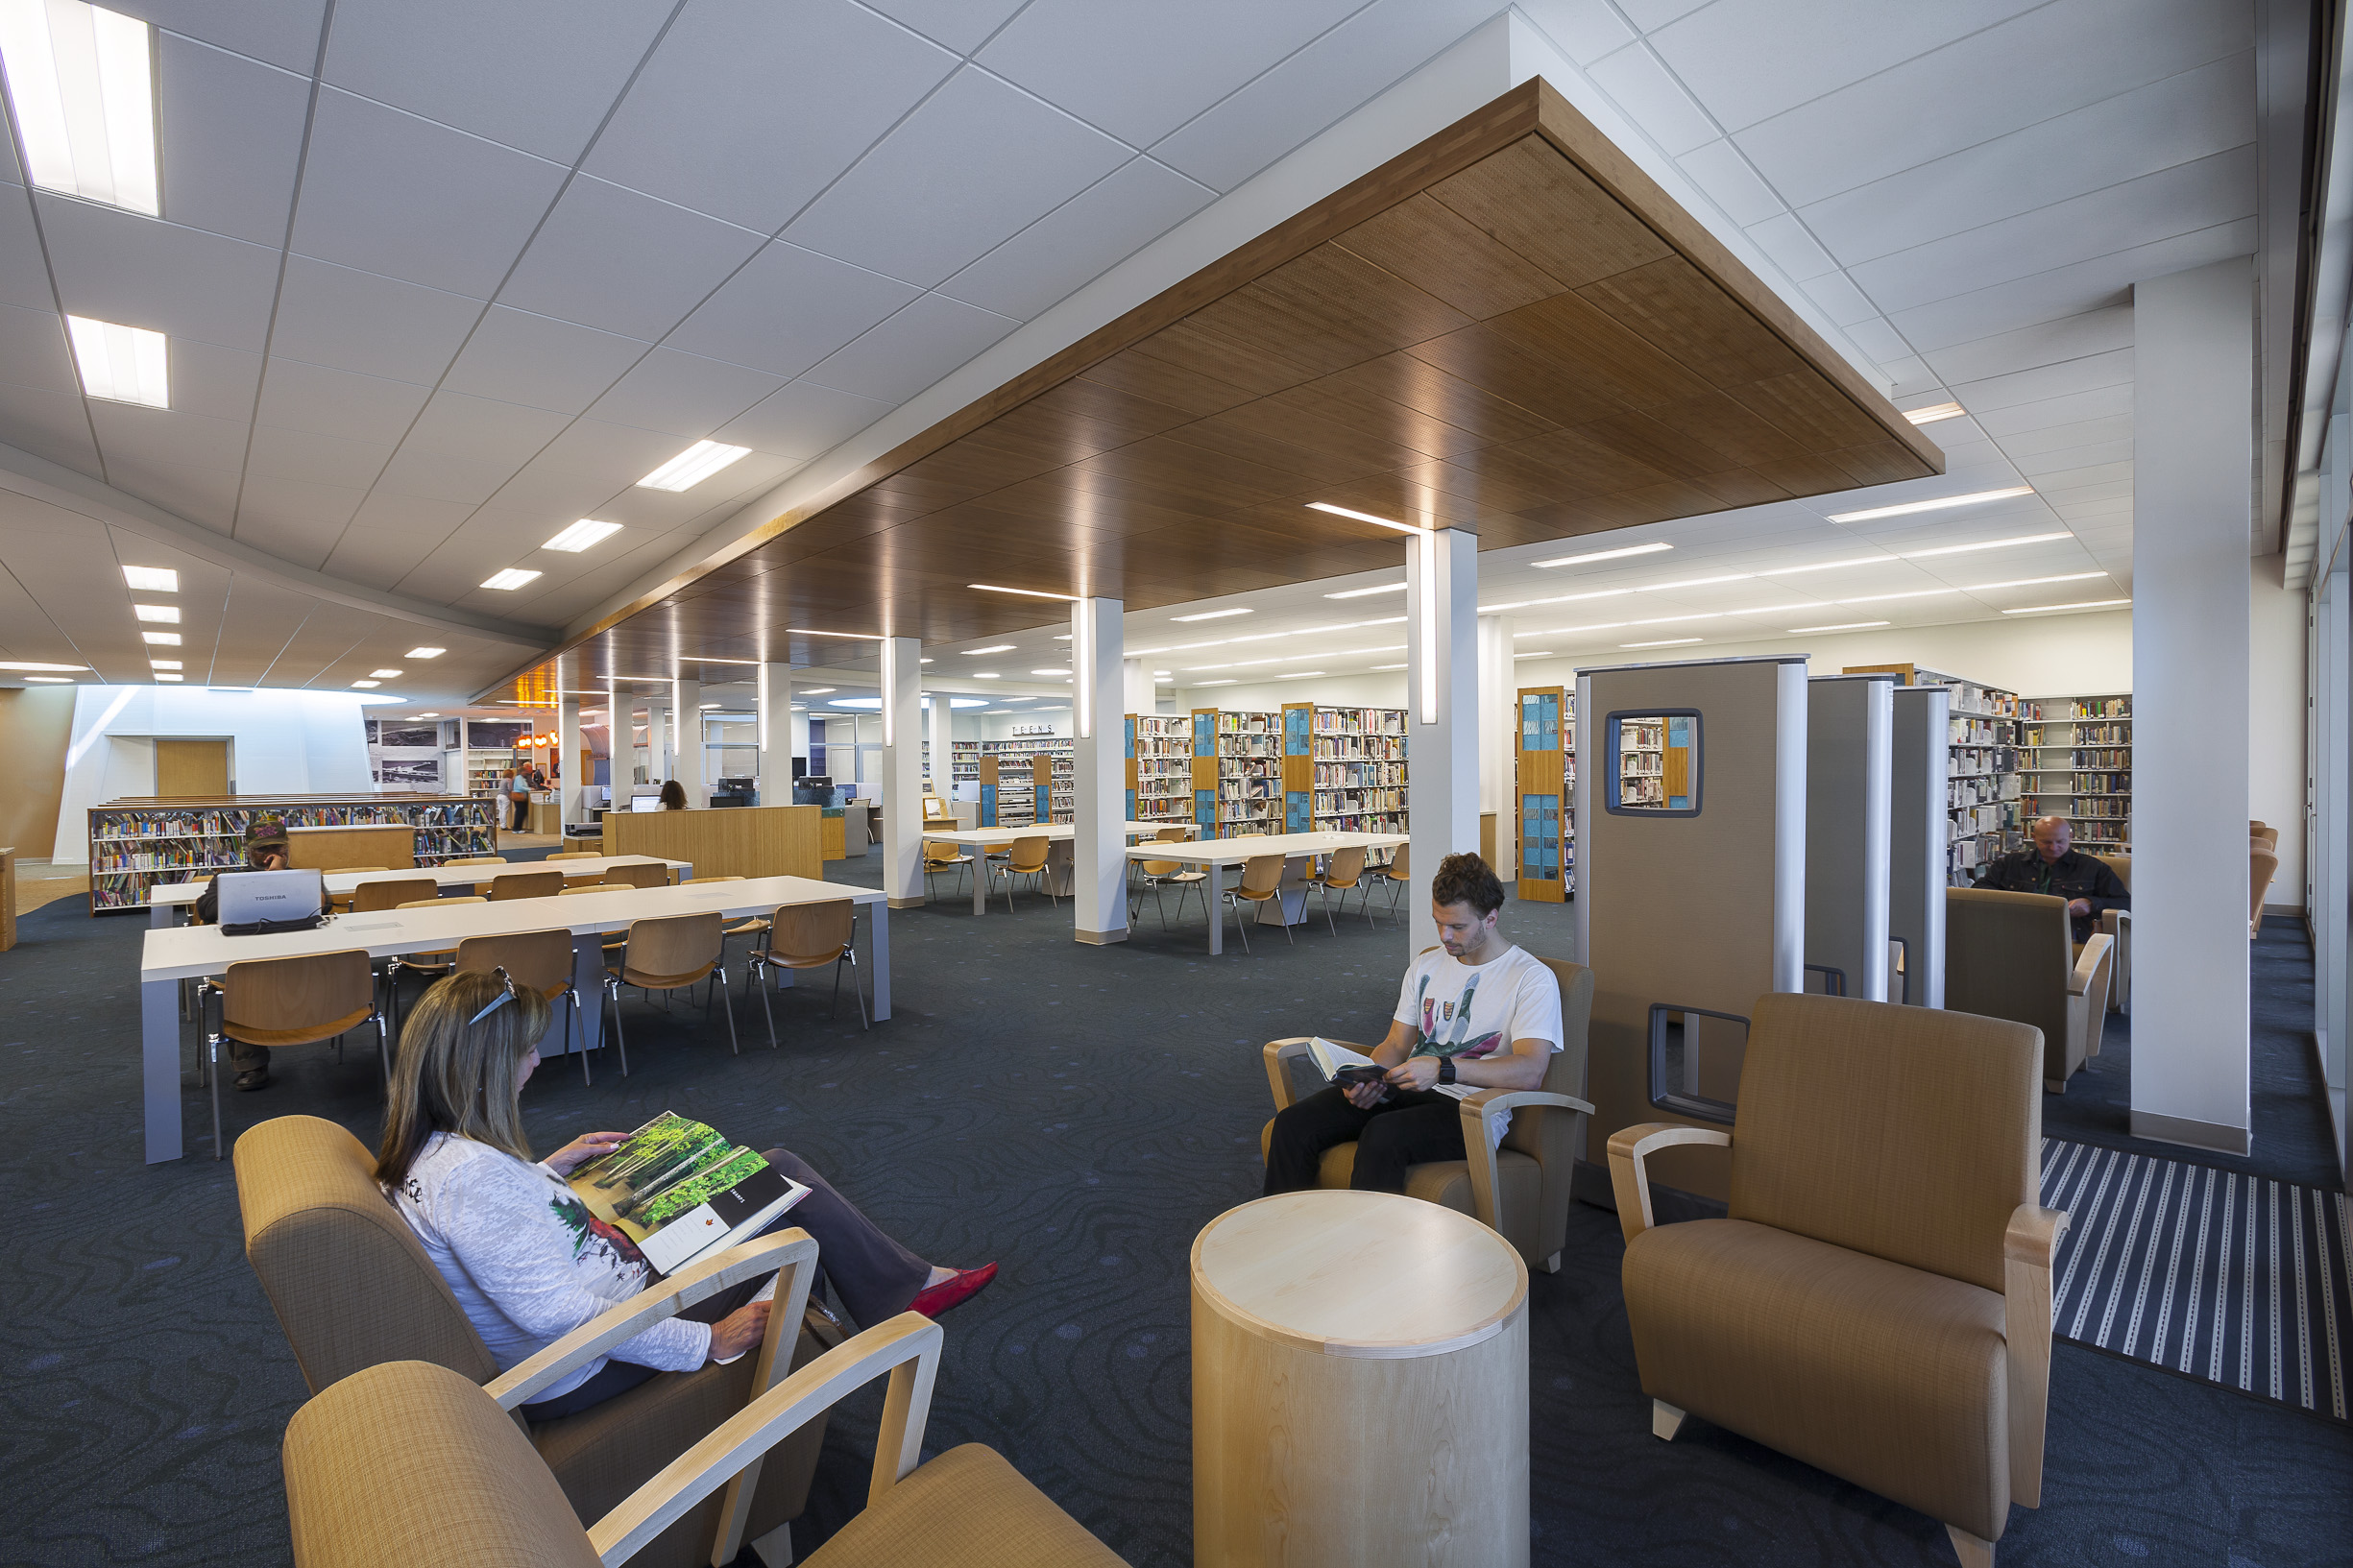 Malibu Library Featured in Library Journals Top Architecture